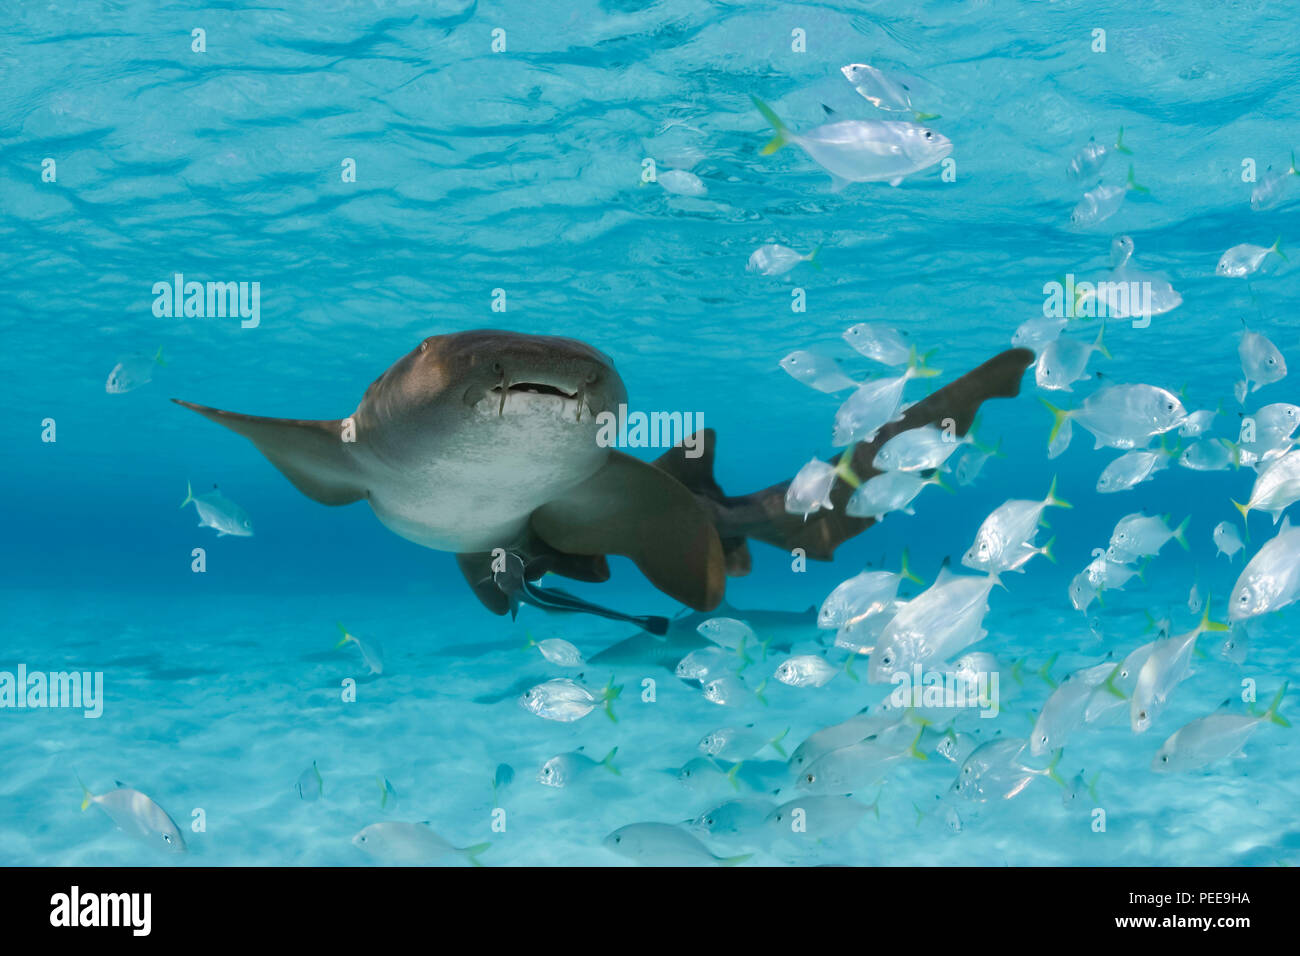 This nurse shark, Ginglymostoma cirratum, is pictured with a school of juvinile jacks.  Bahamas. - Stock Image